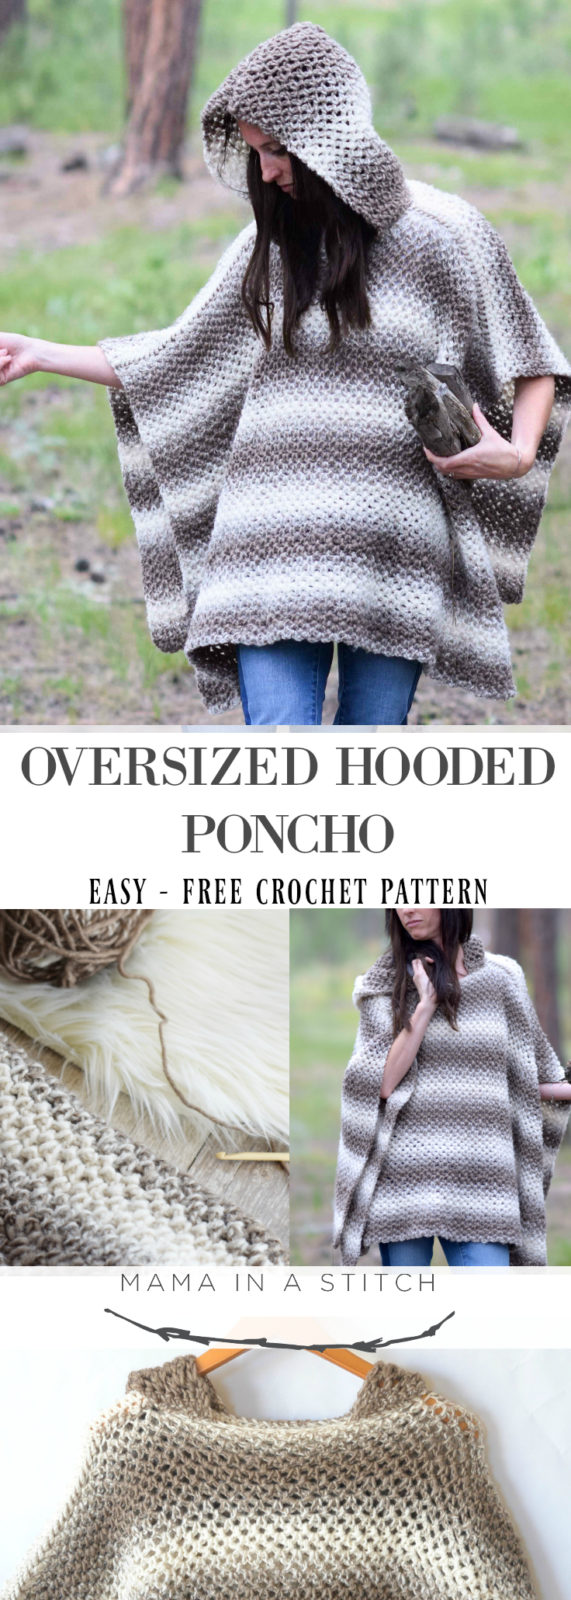 Driftwood Oversized Crochet Hooded Poncho Pattern – Mama In